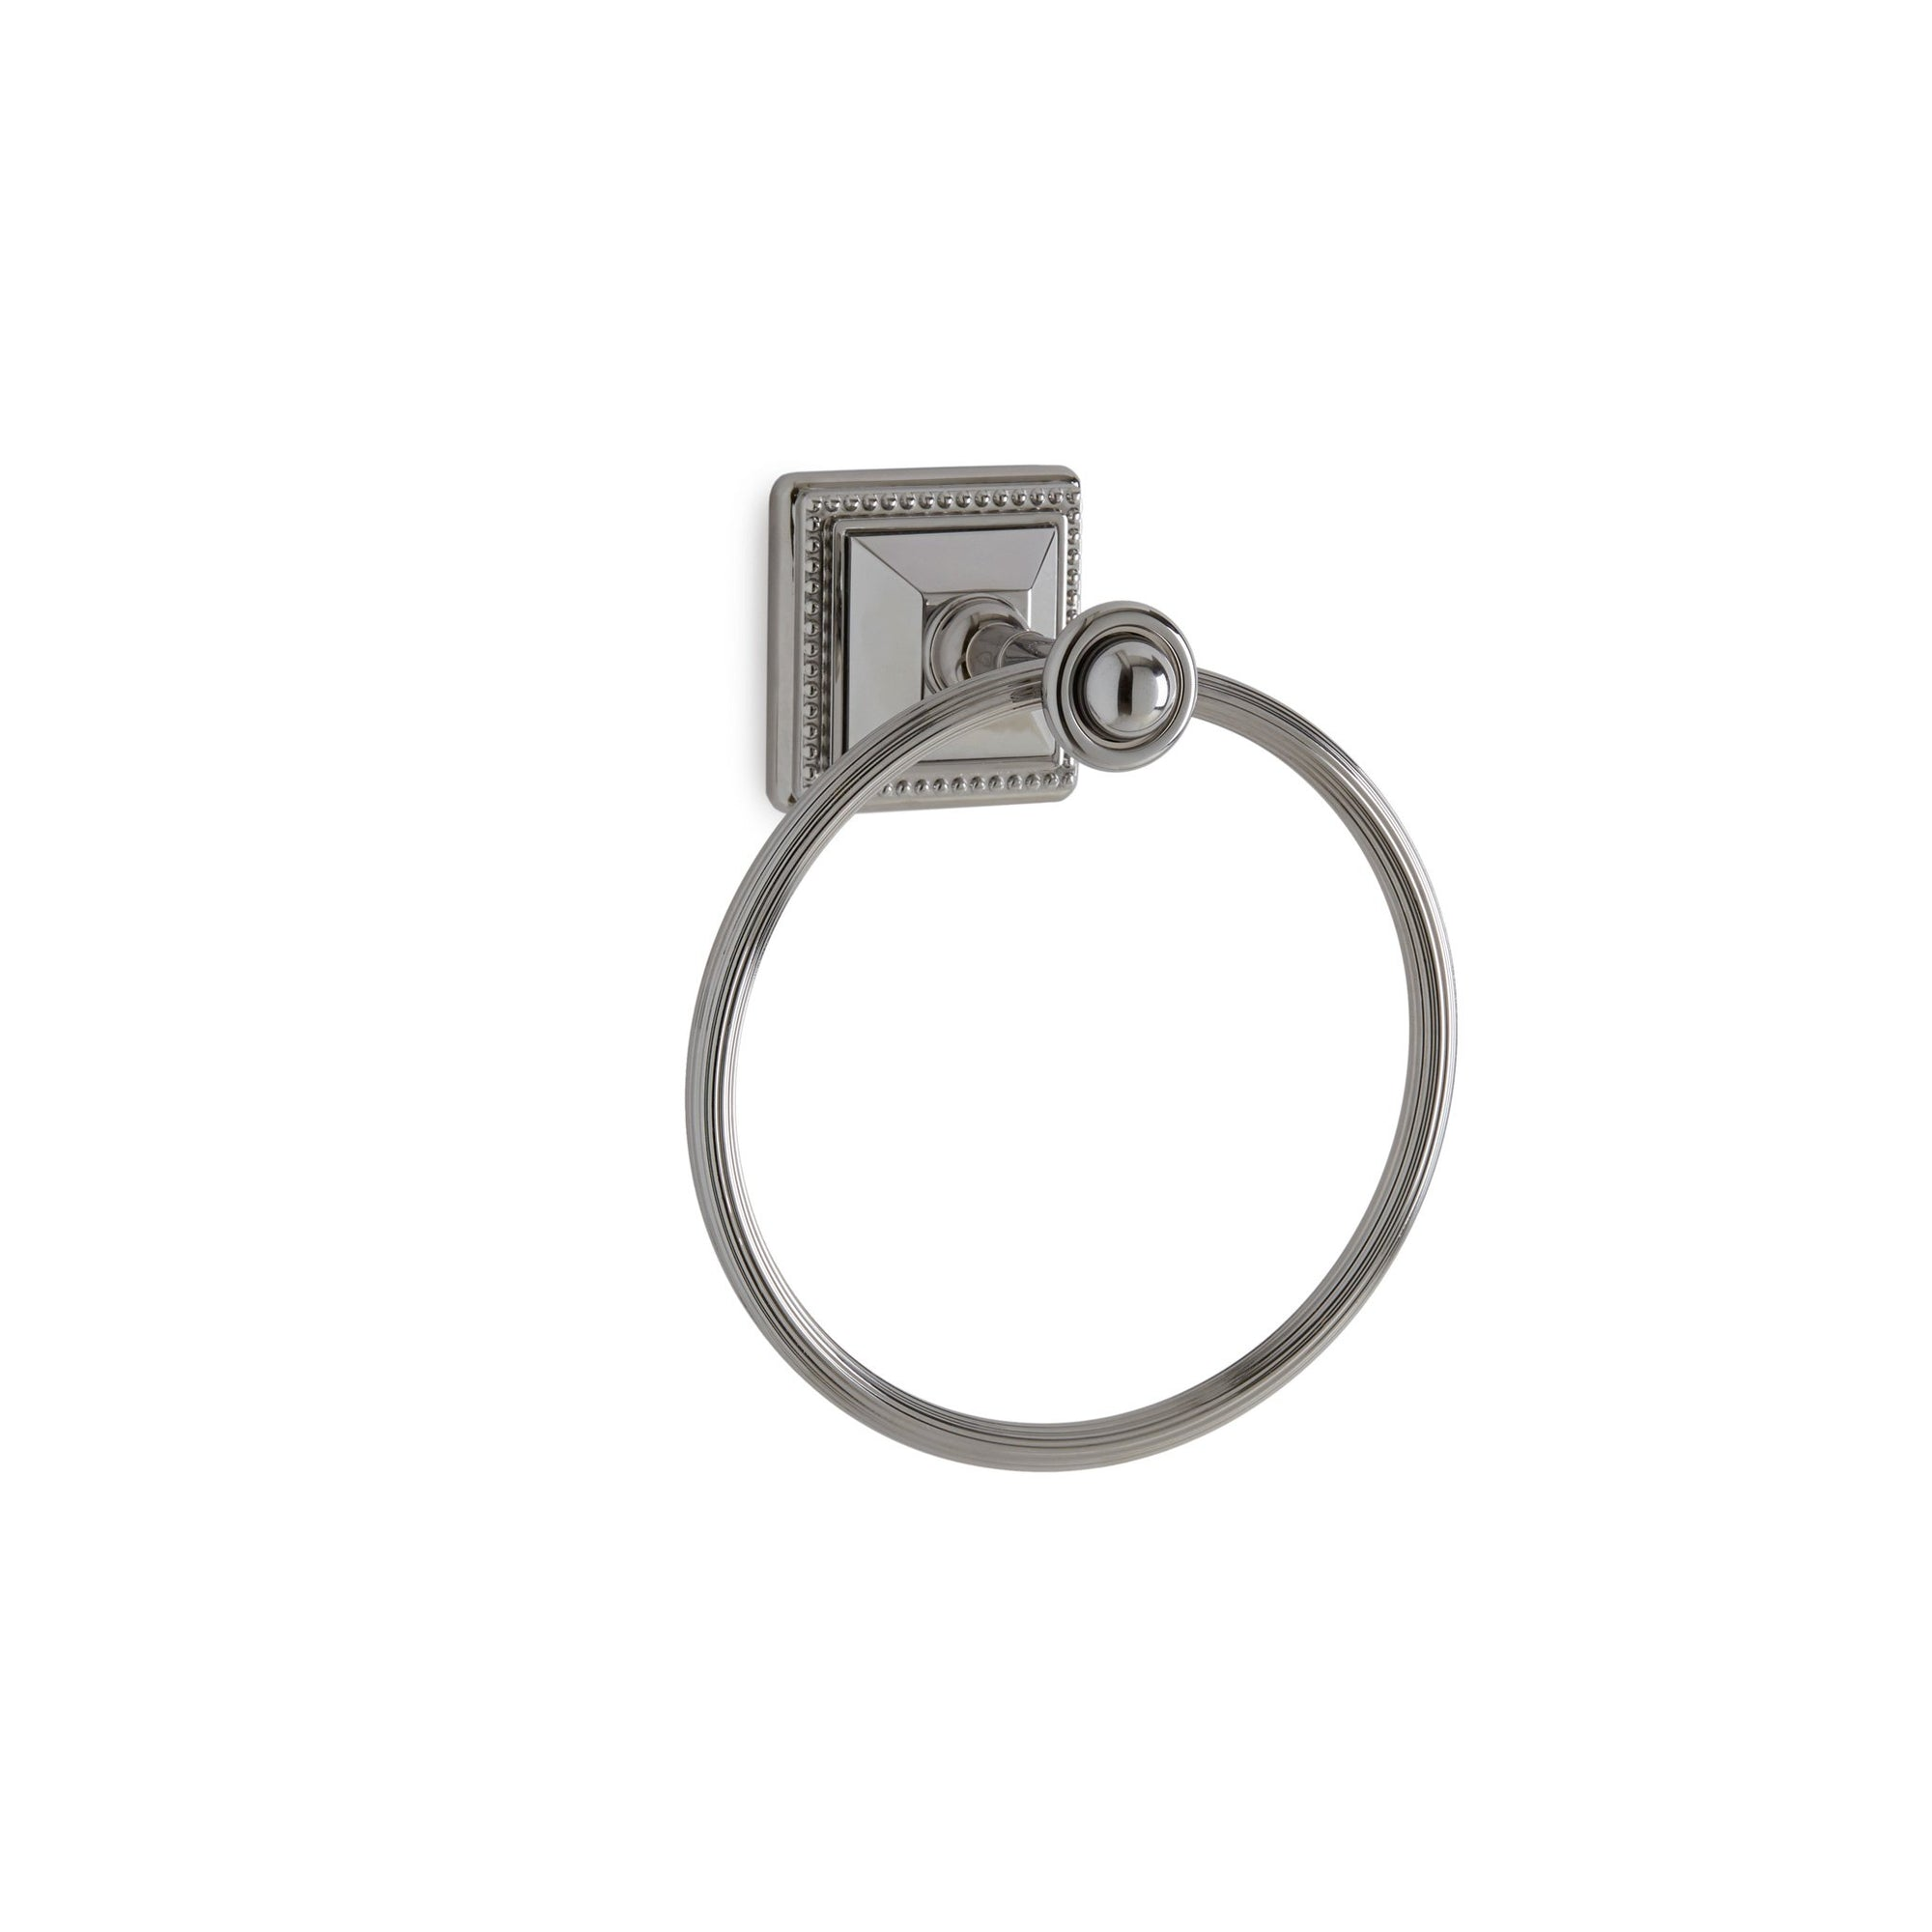 3401-MLIN-CP Sherle Wagner International Pyramid Towel Ring in Polished Chrome metal finish